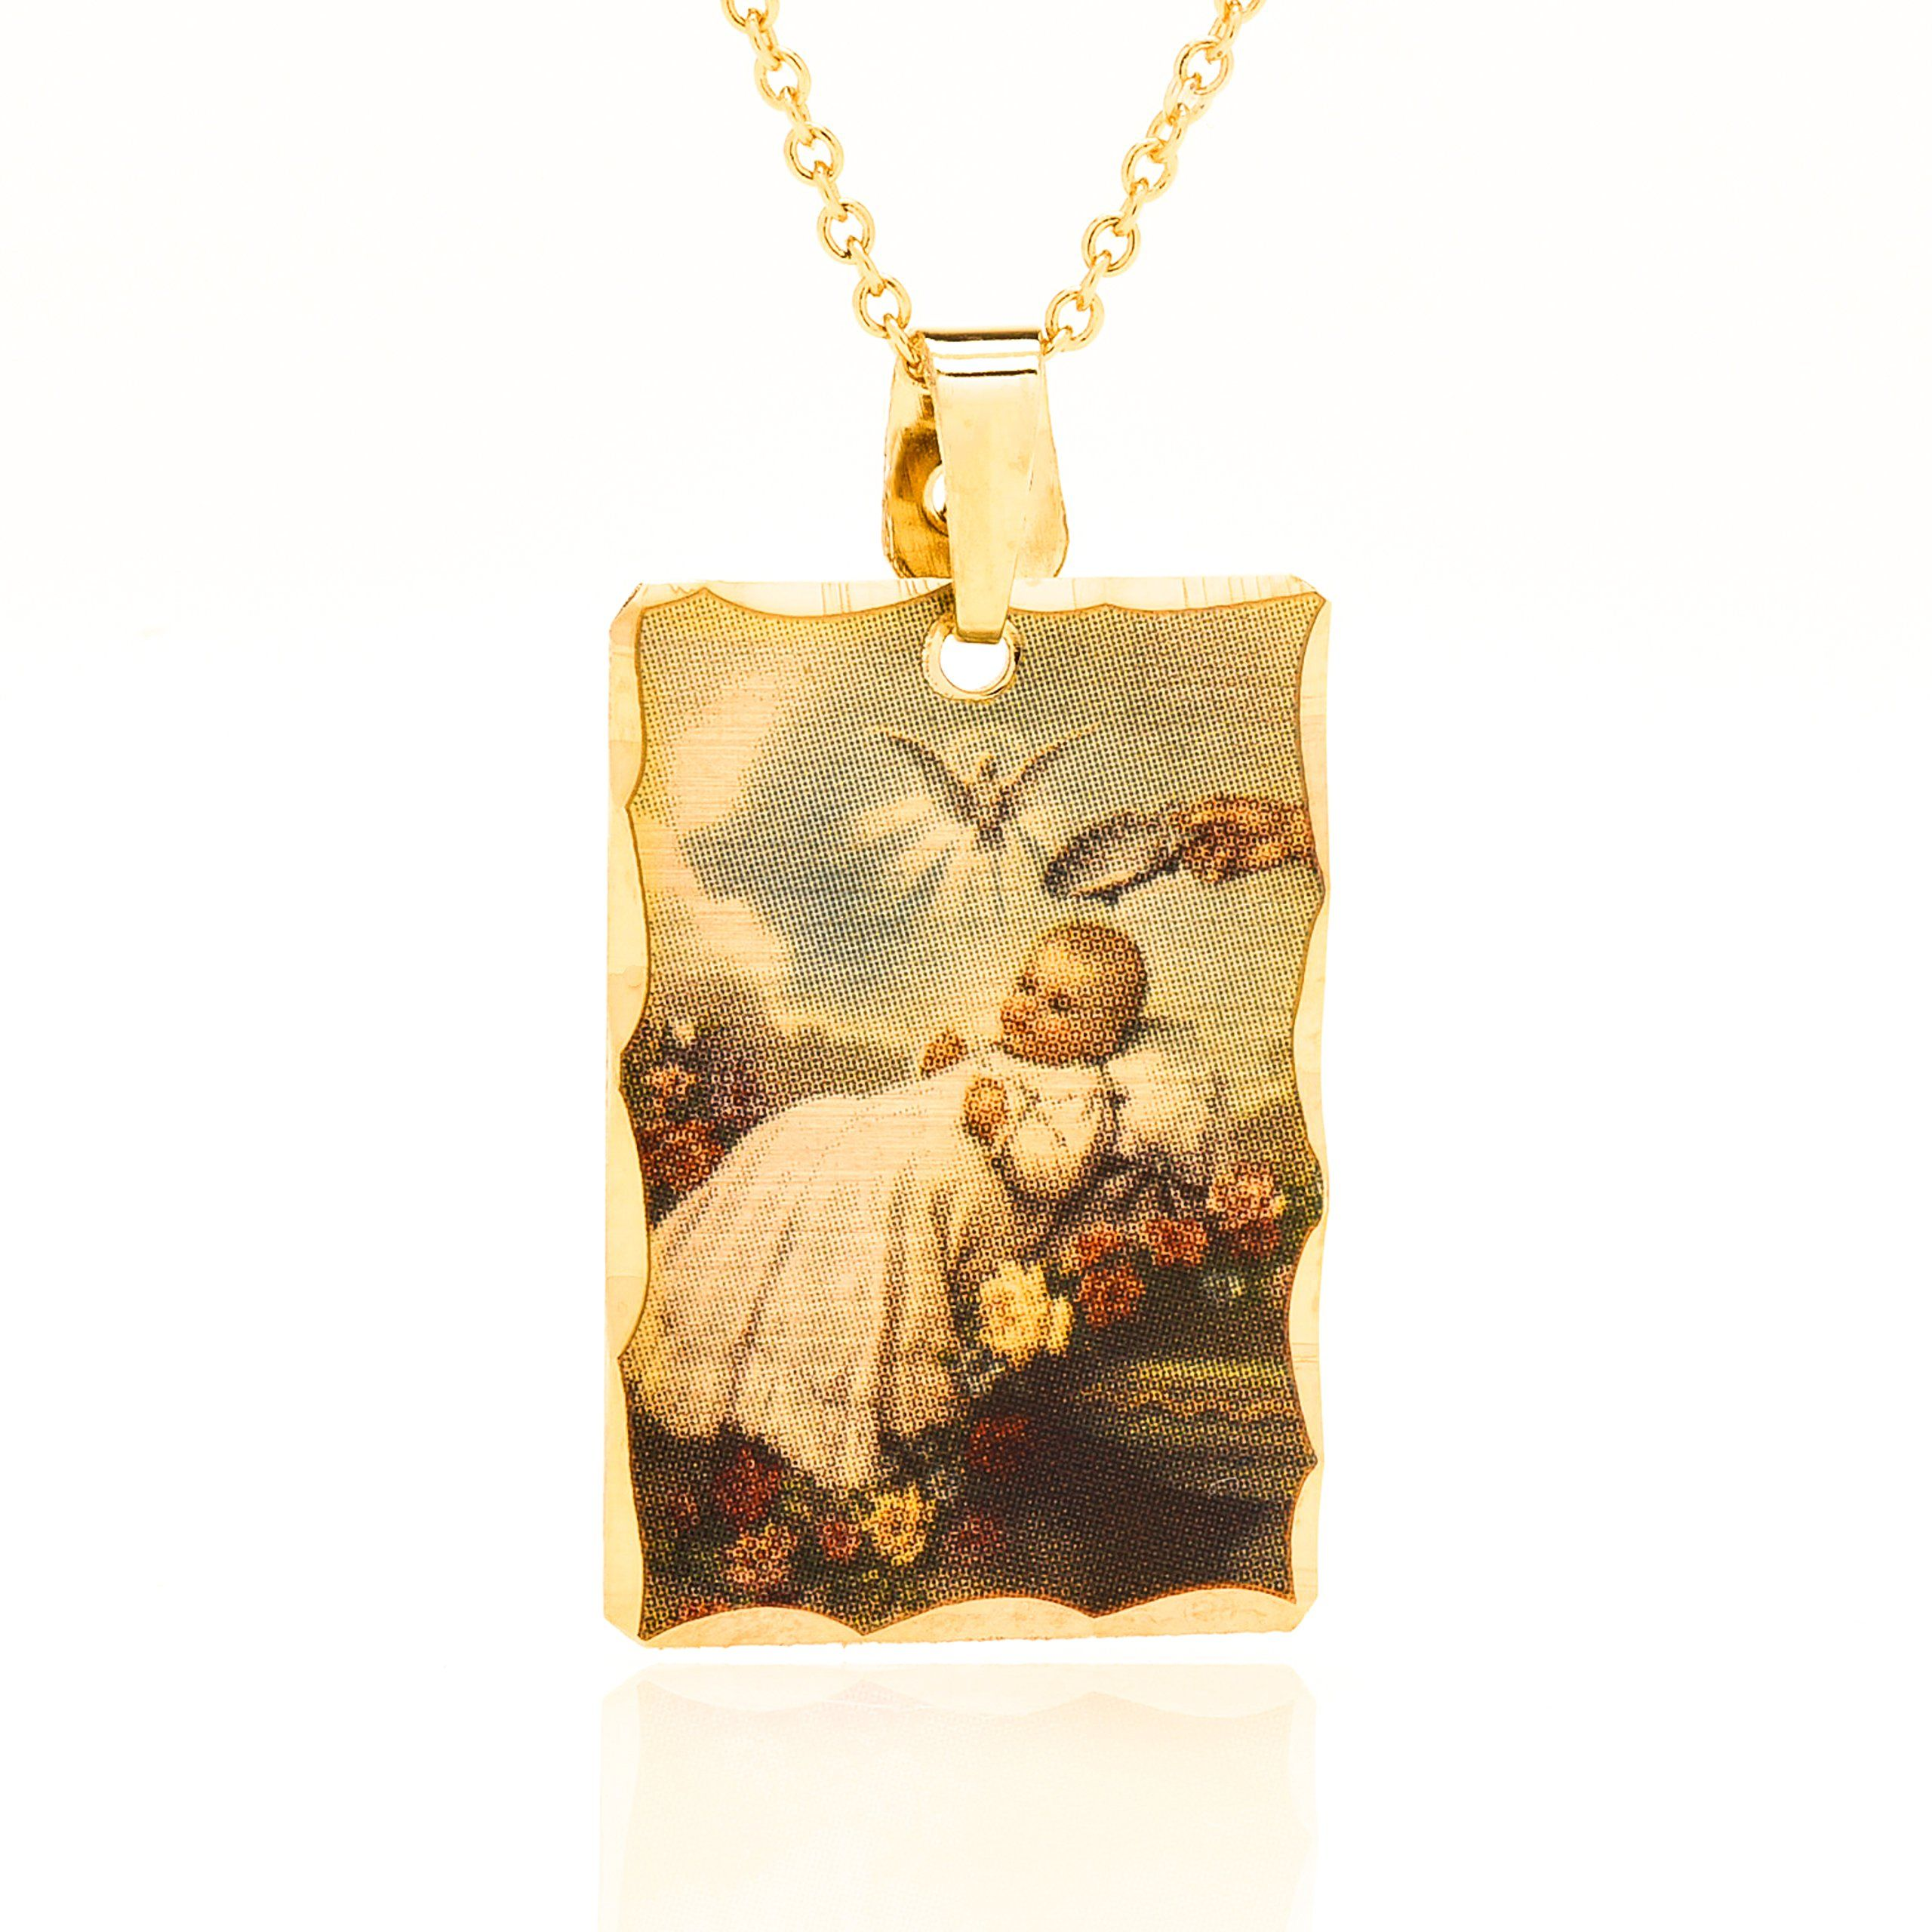 pendant en sg first gift childs fullxfull zoom baptism confirmation communion il necklace listing